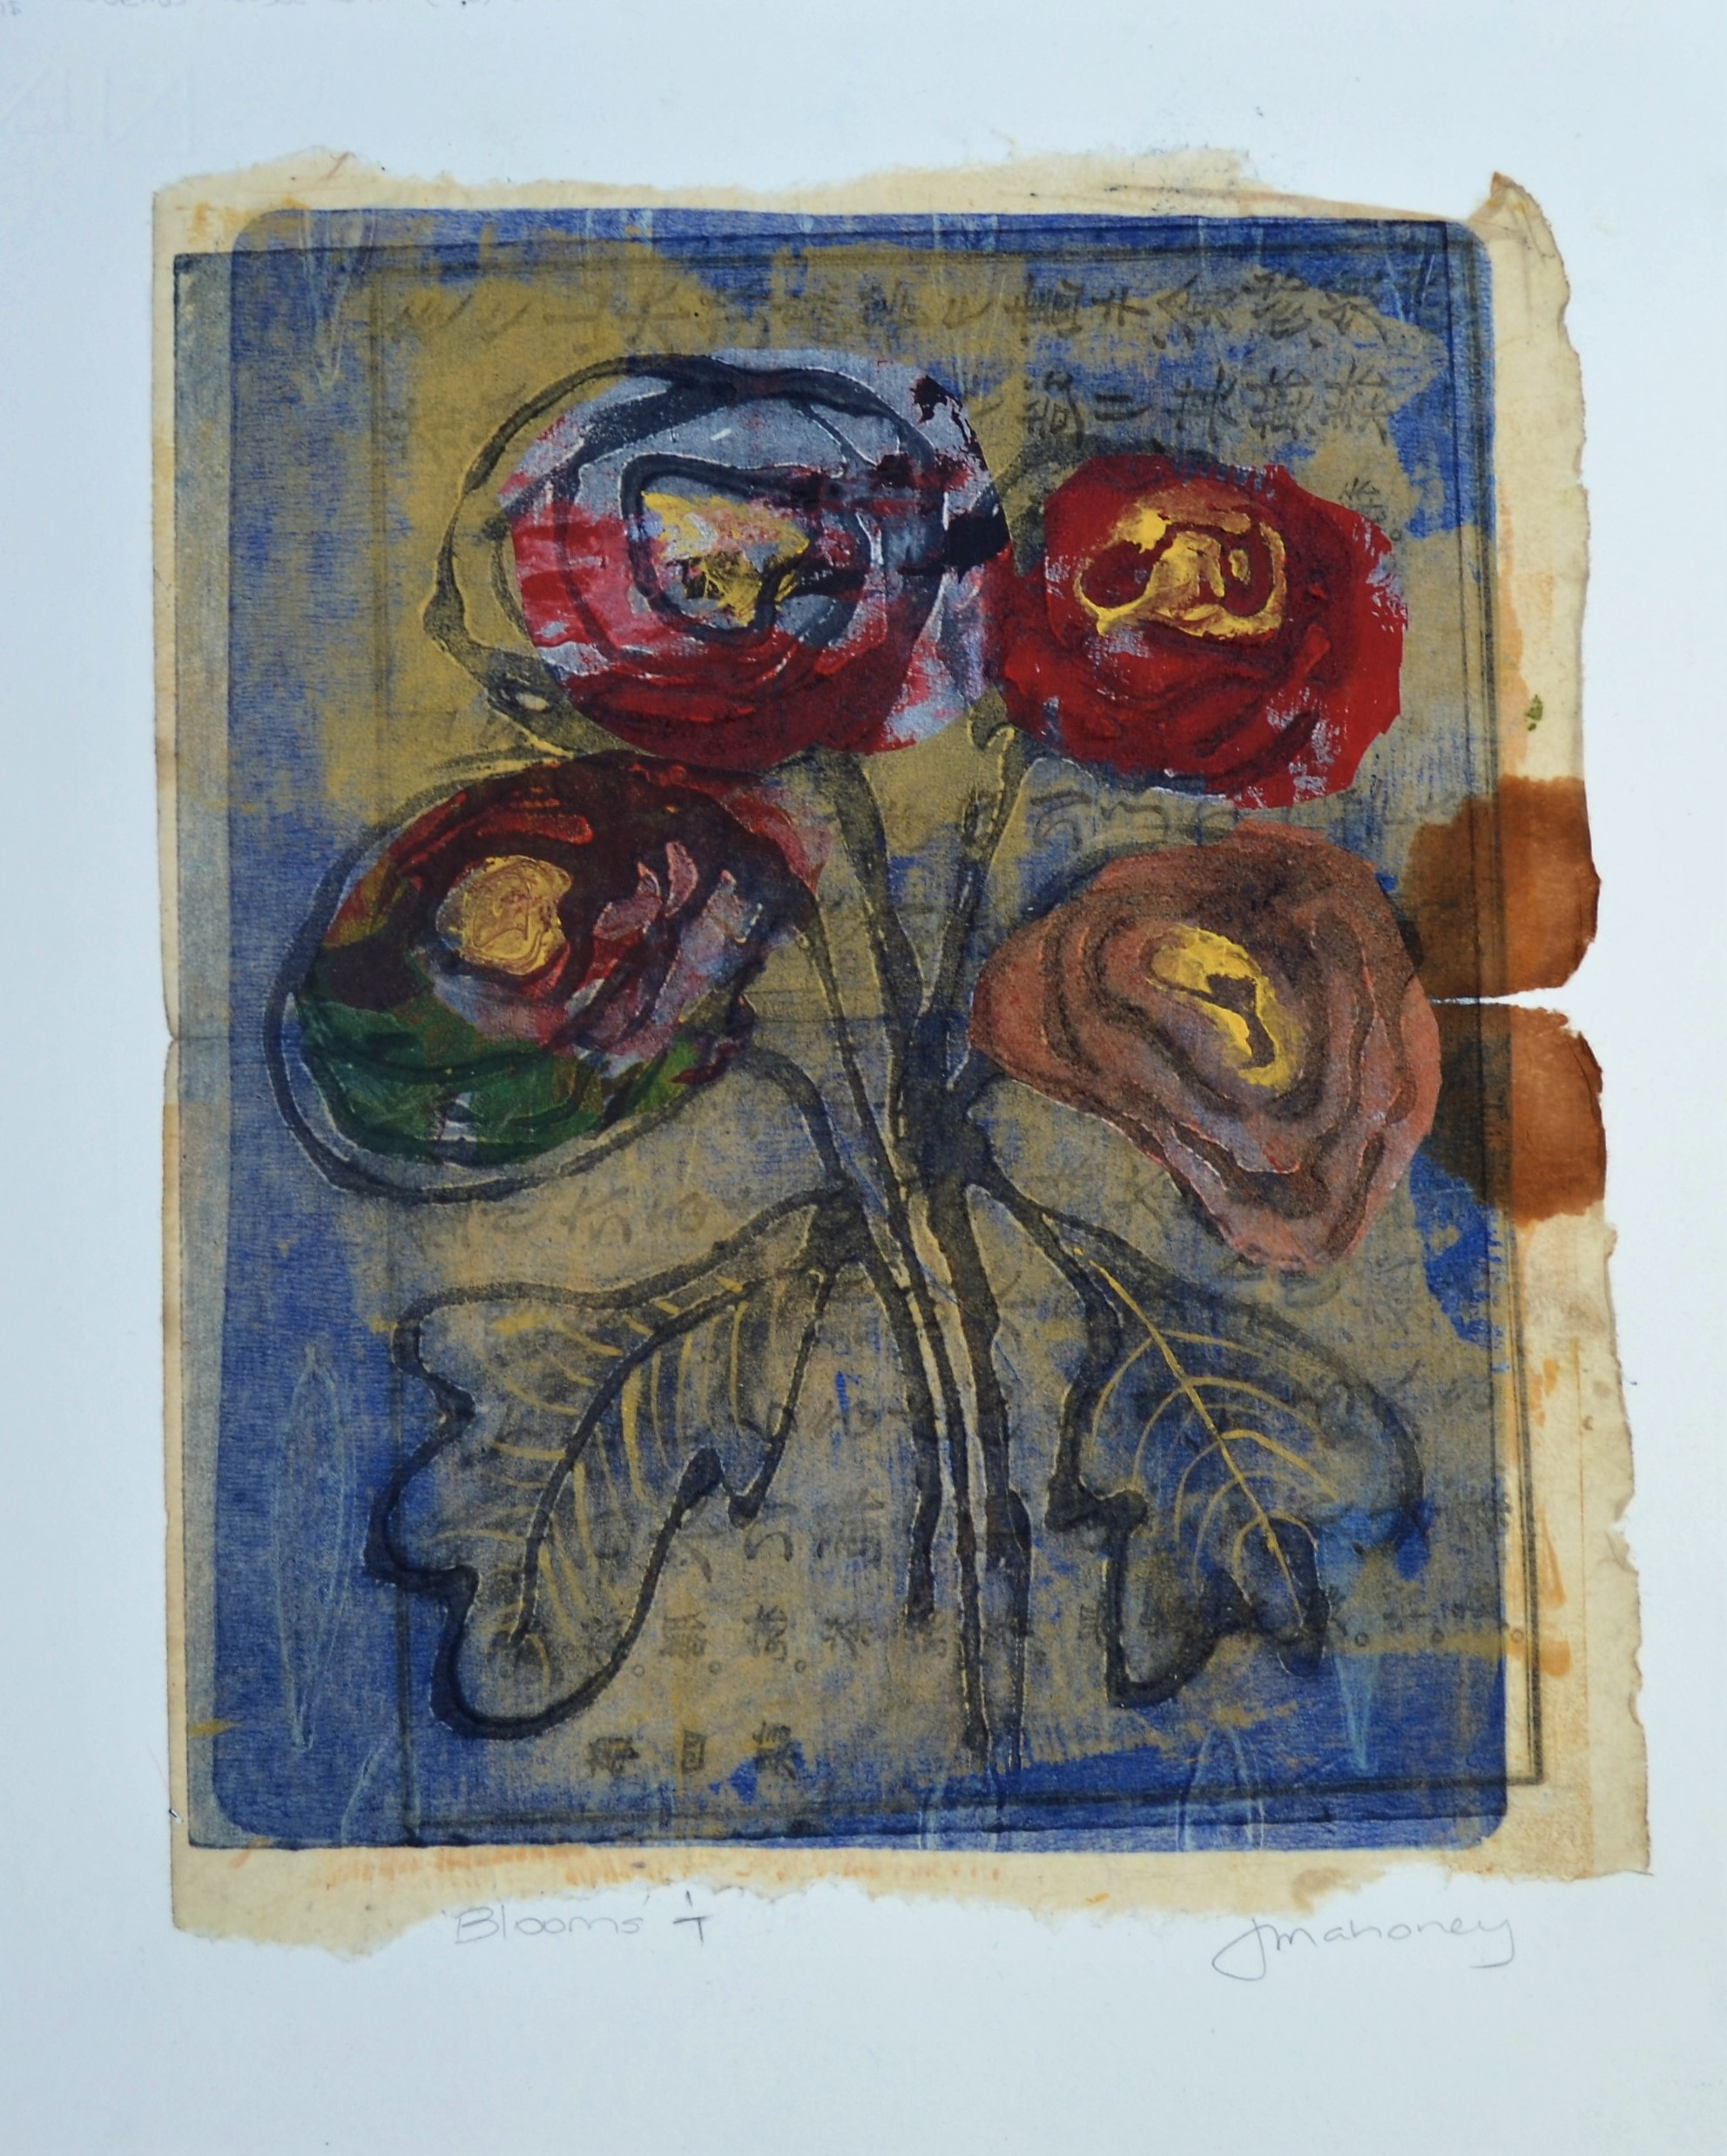 <strong>Blooms 1/7 VE<strong> Collagraph & Chine Colle  430mm H x 330 W -  SOLD